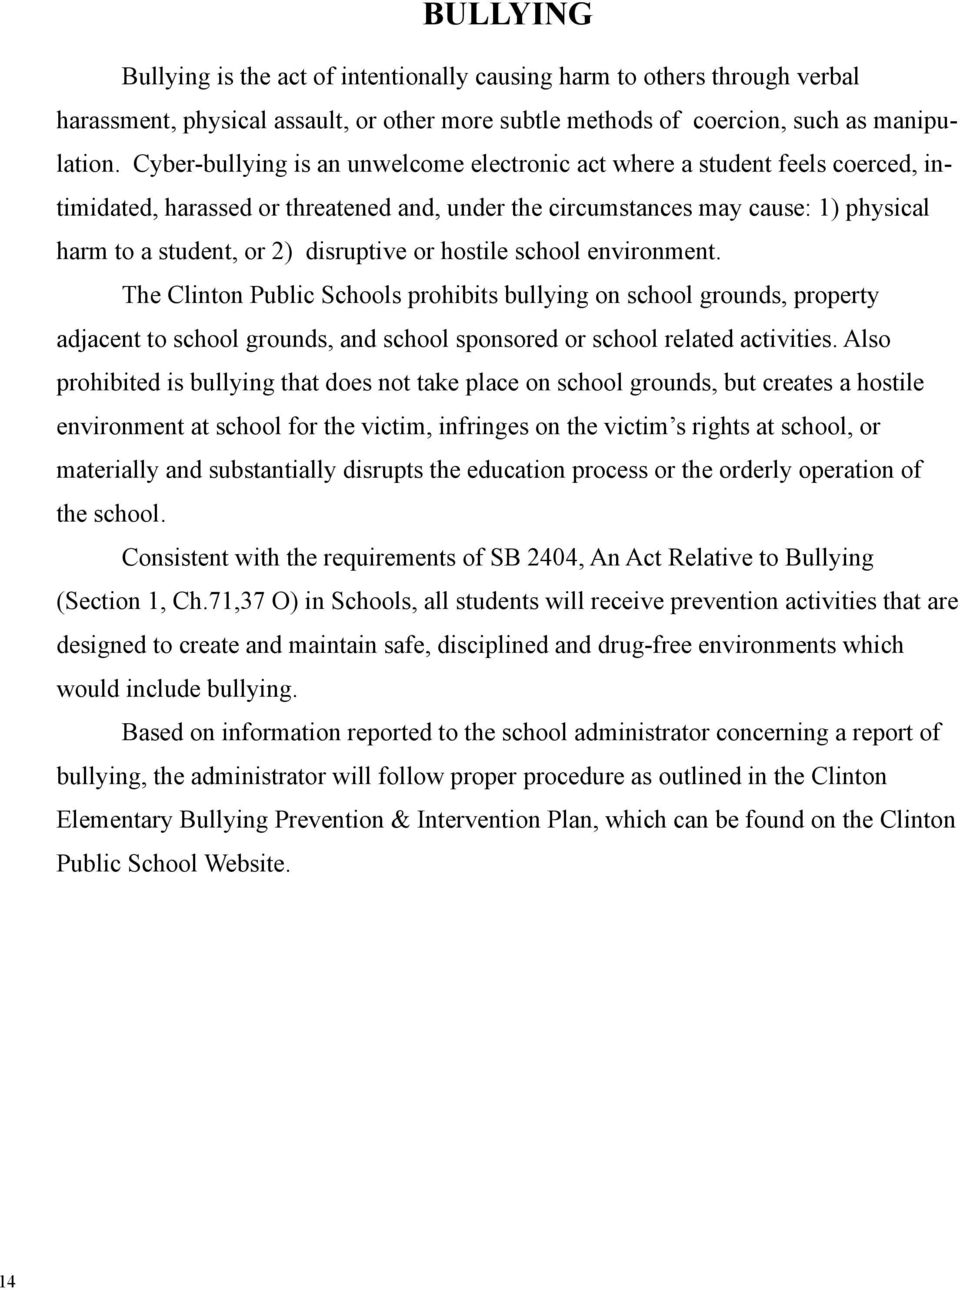 disruptive or hostile school environment. The Clinton Public Schools prohibits bullying on school grounds, property adjacent to school grounds, and school sponsored or school related activities.